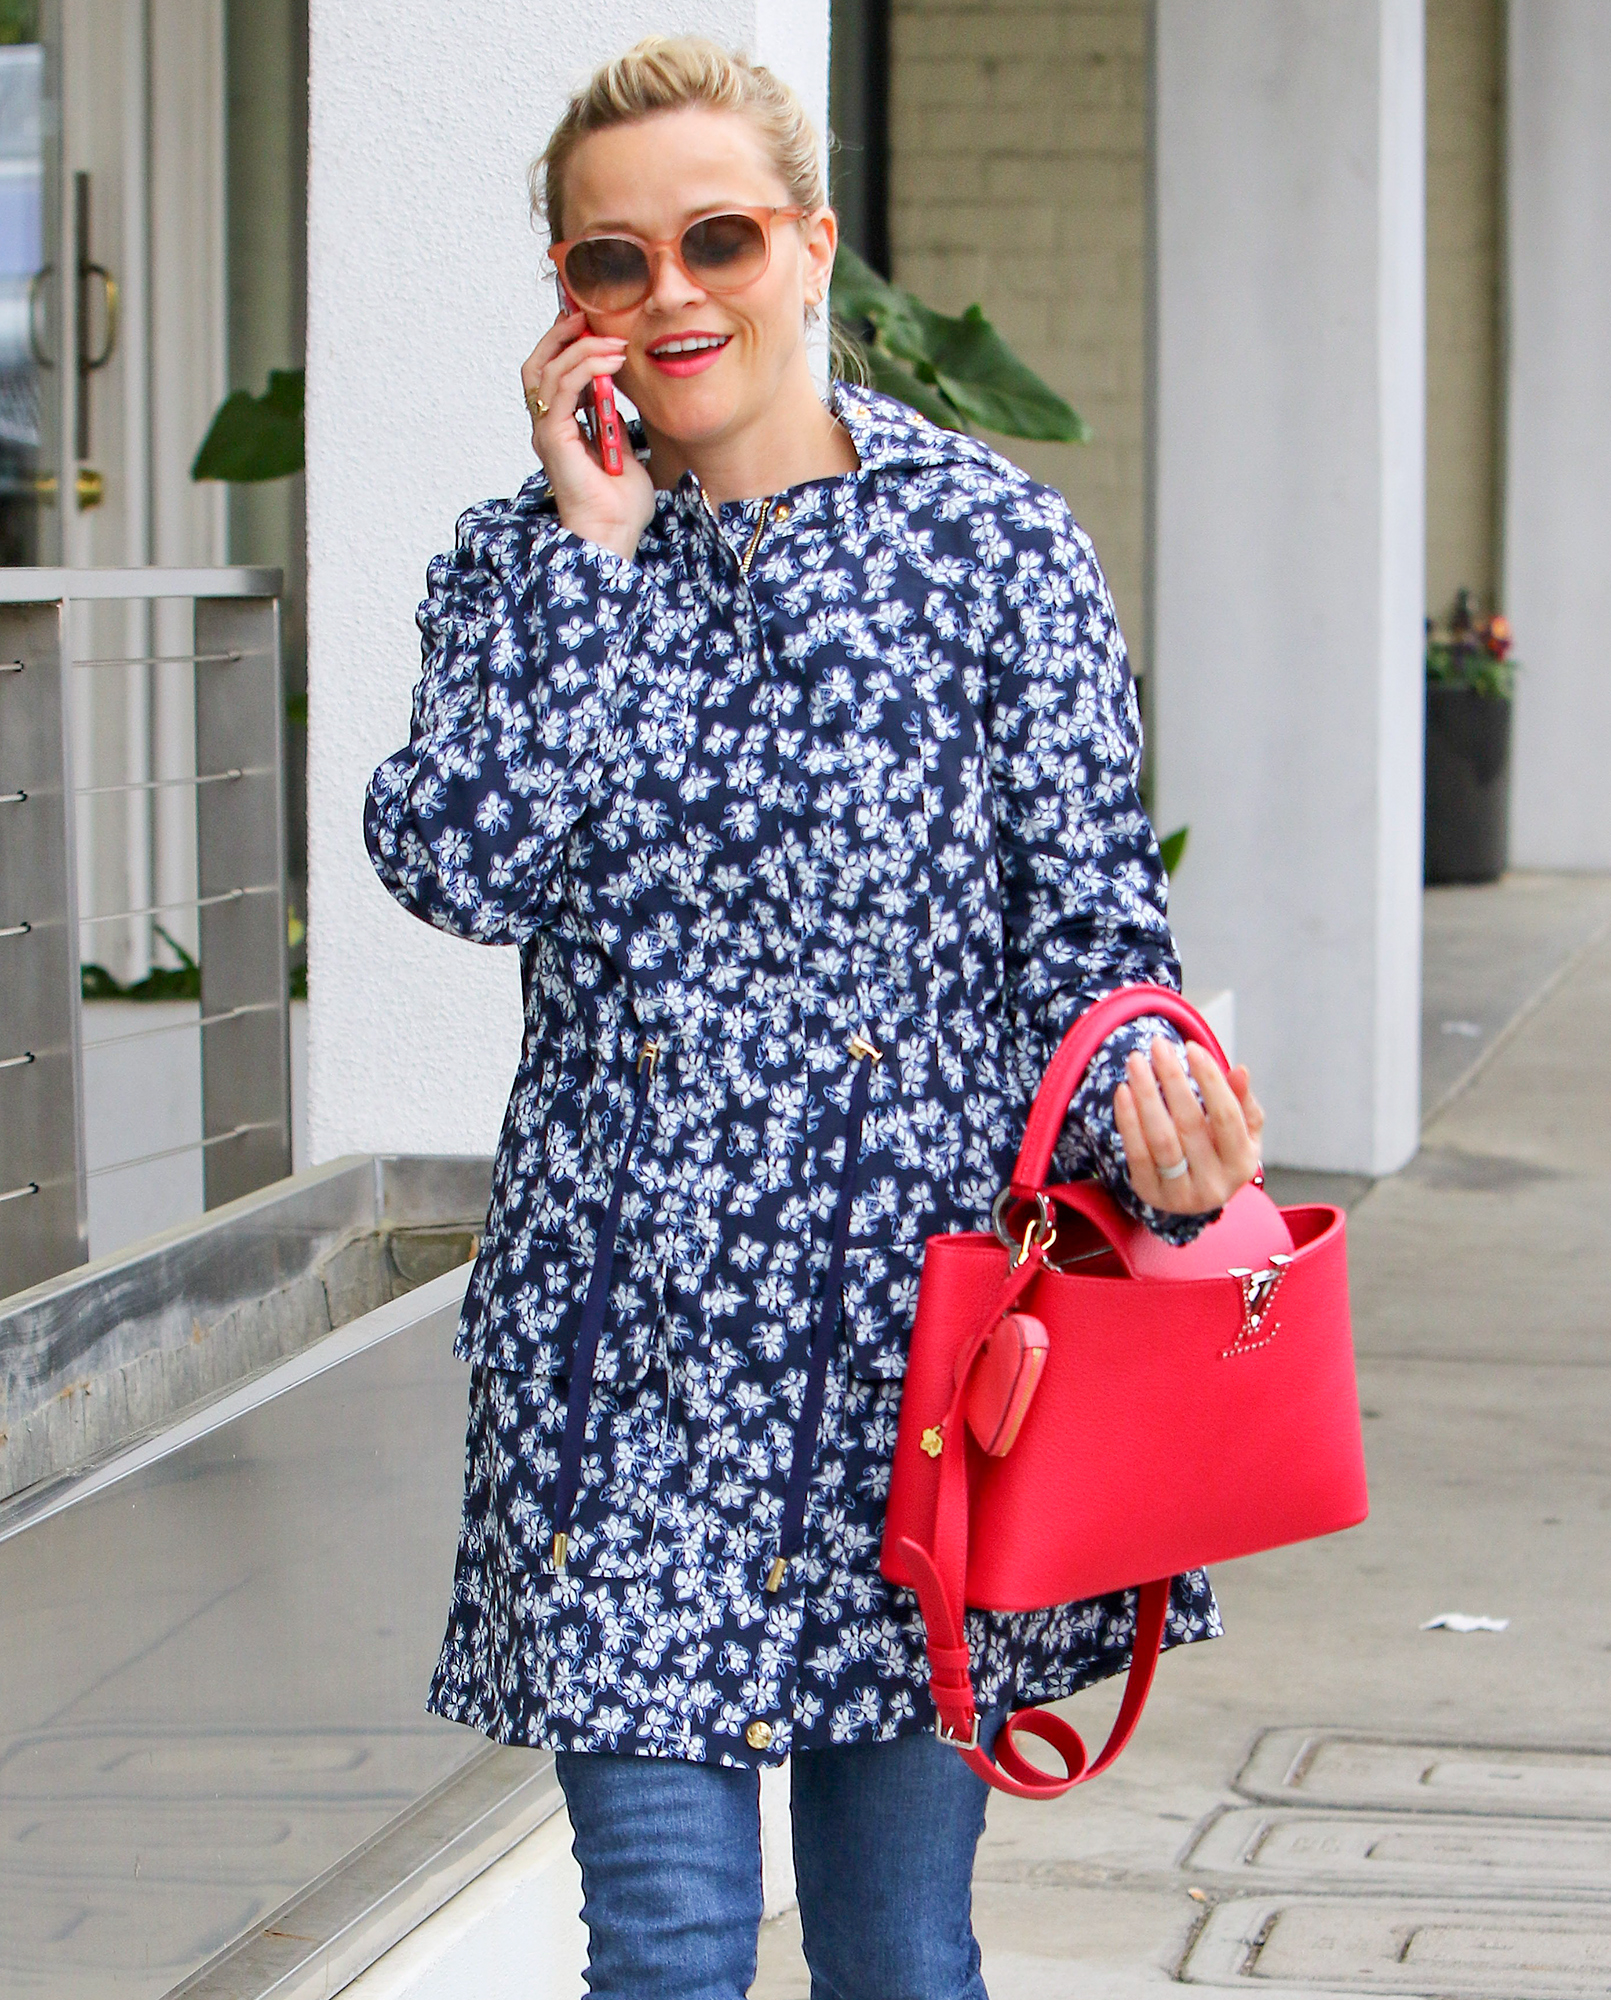 EXCLUSIVE: Reese Whiterspoon looks chick in jeans and a blue floral coat while shopping in Brentwood.